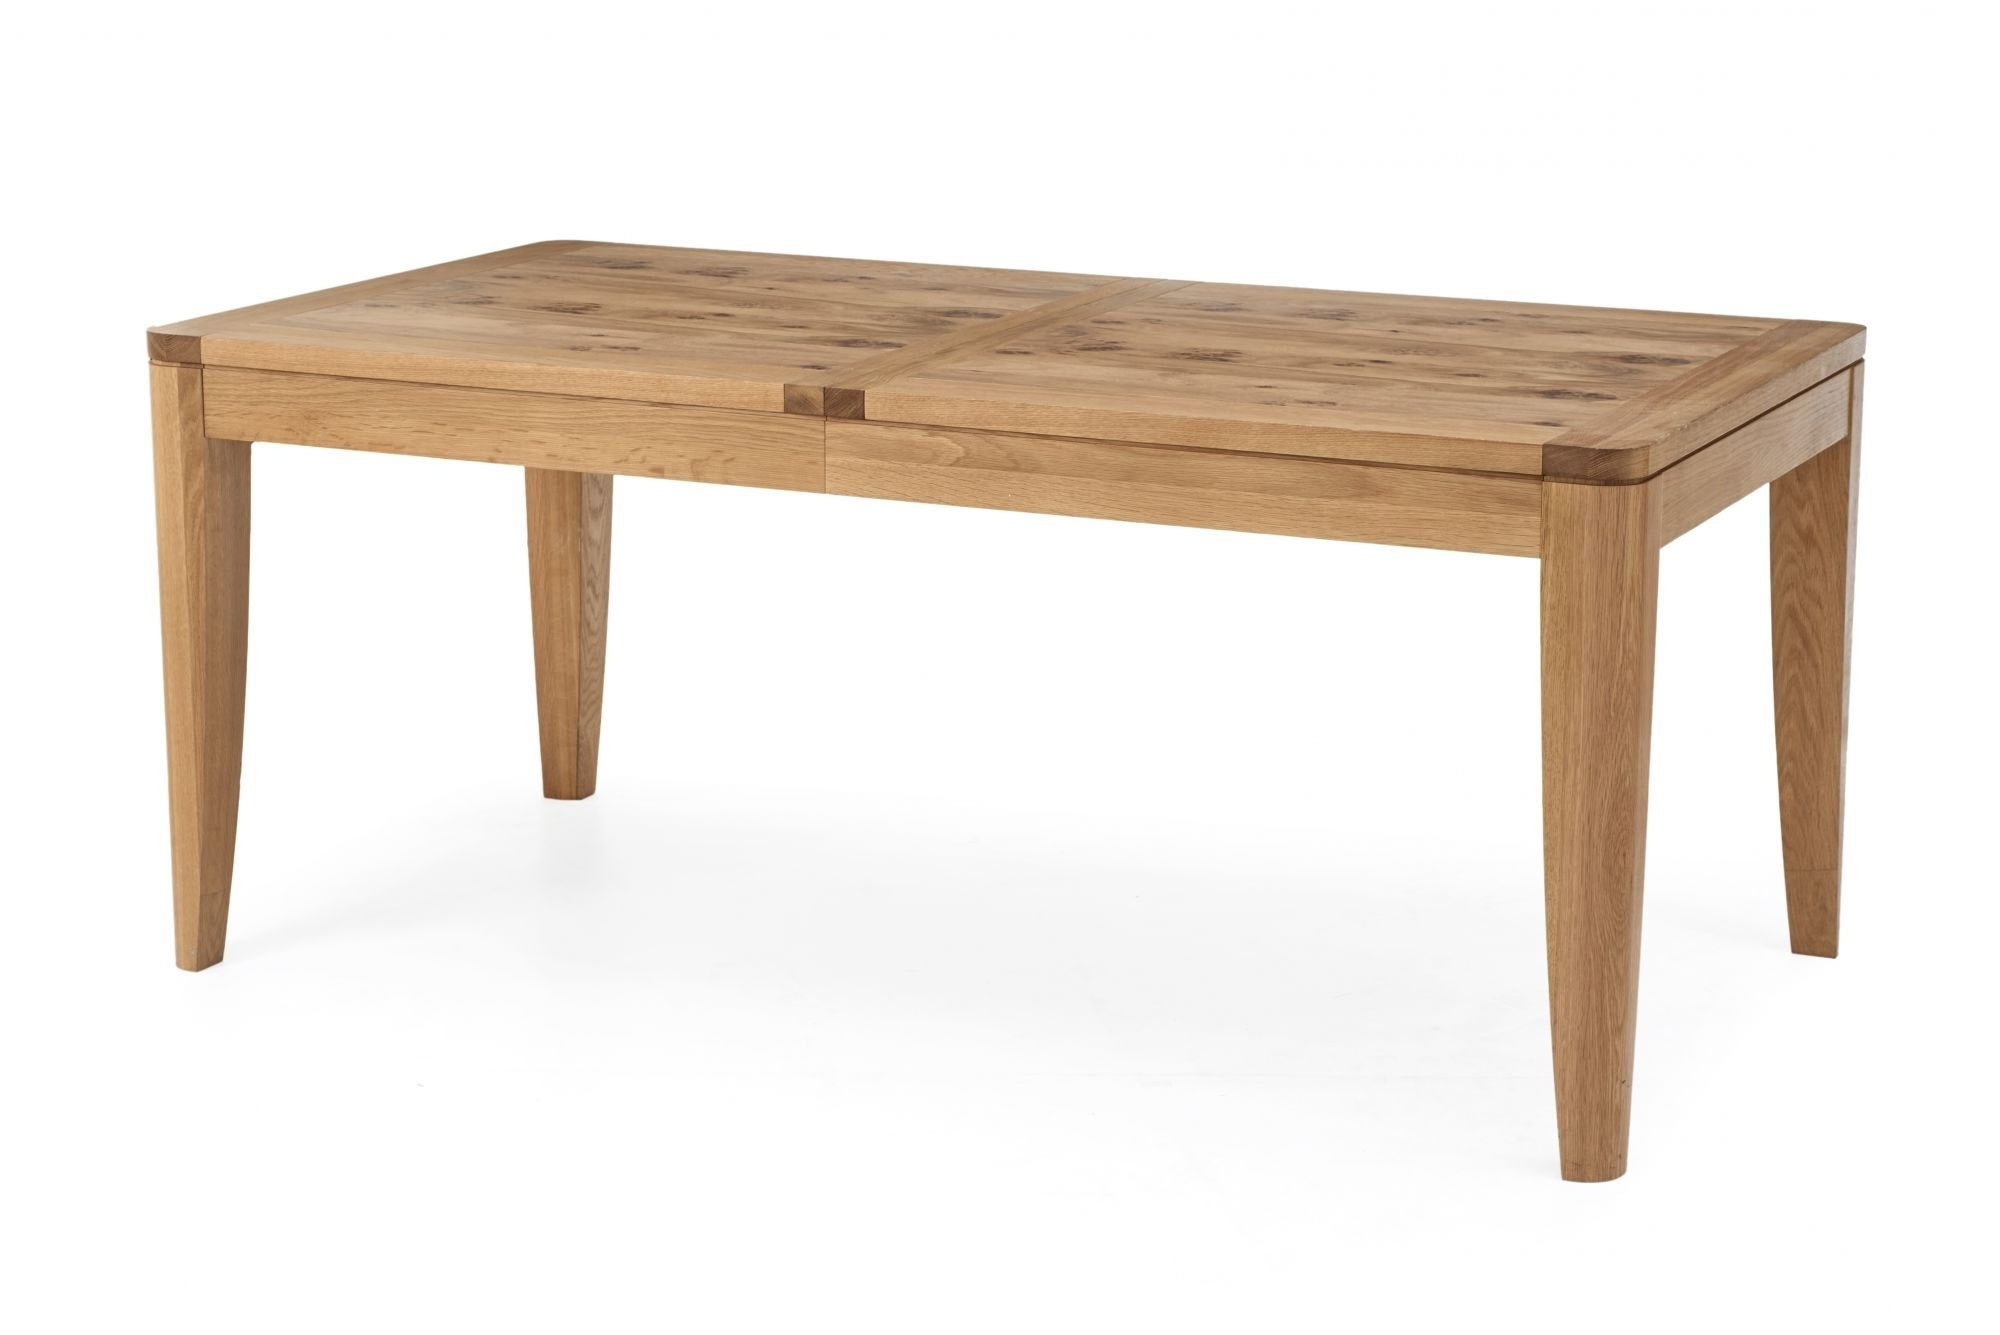 8 Seater Oak Dining Tables in Widely used Pippy Oak Large 6-8 Seater Extending Dining Table